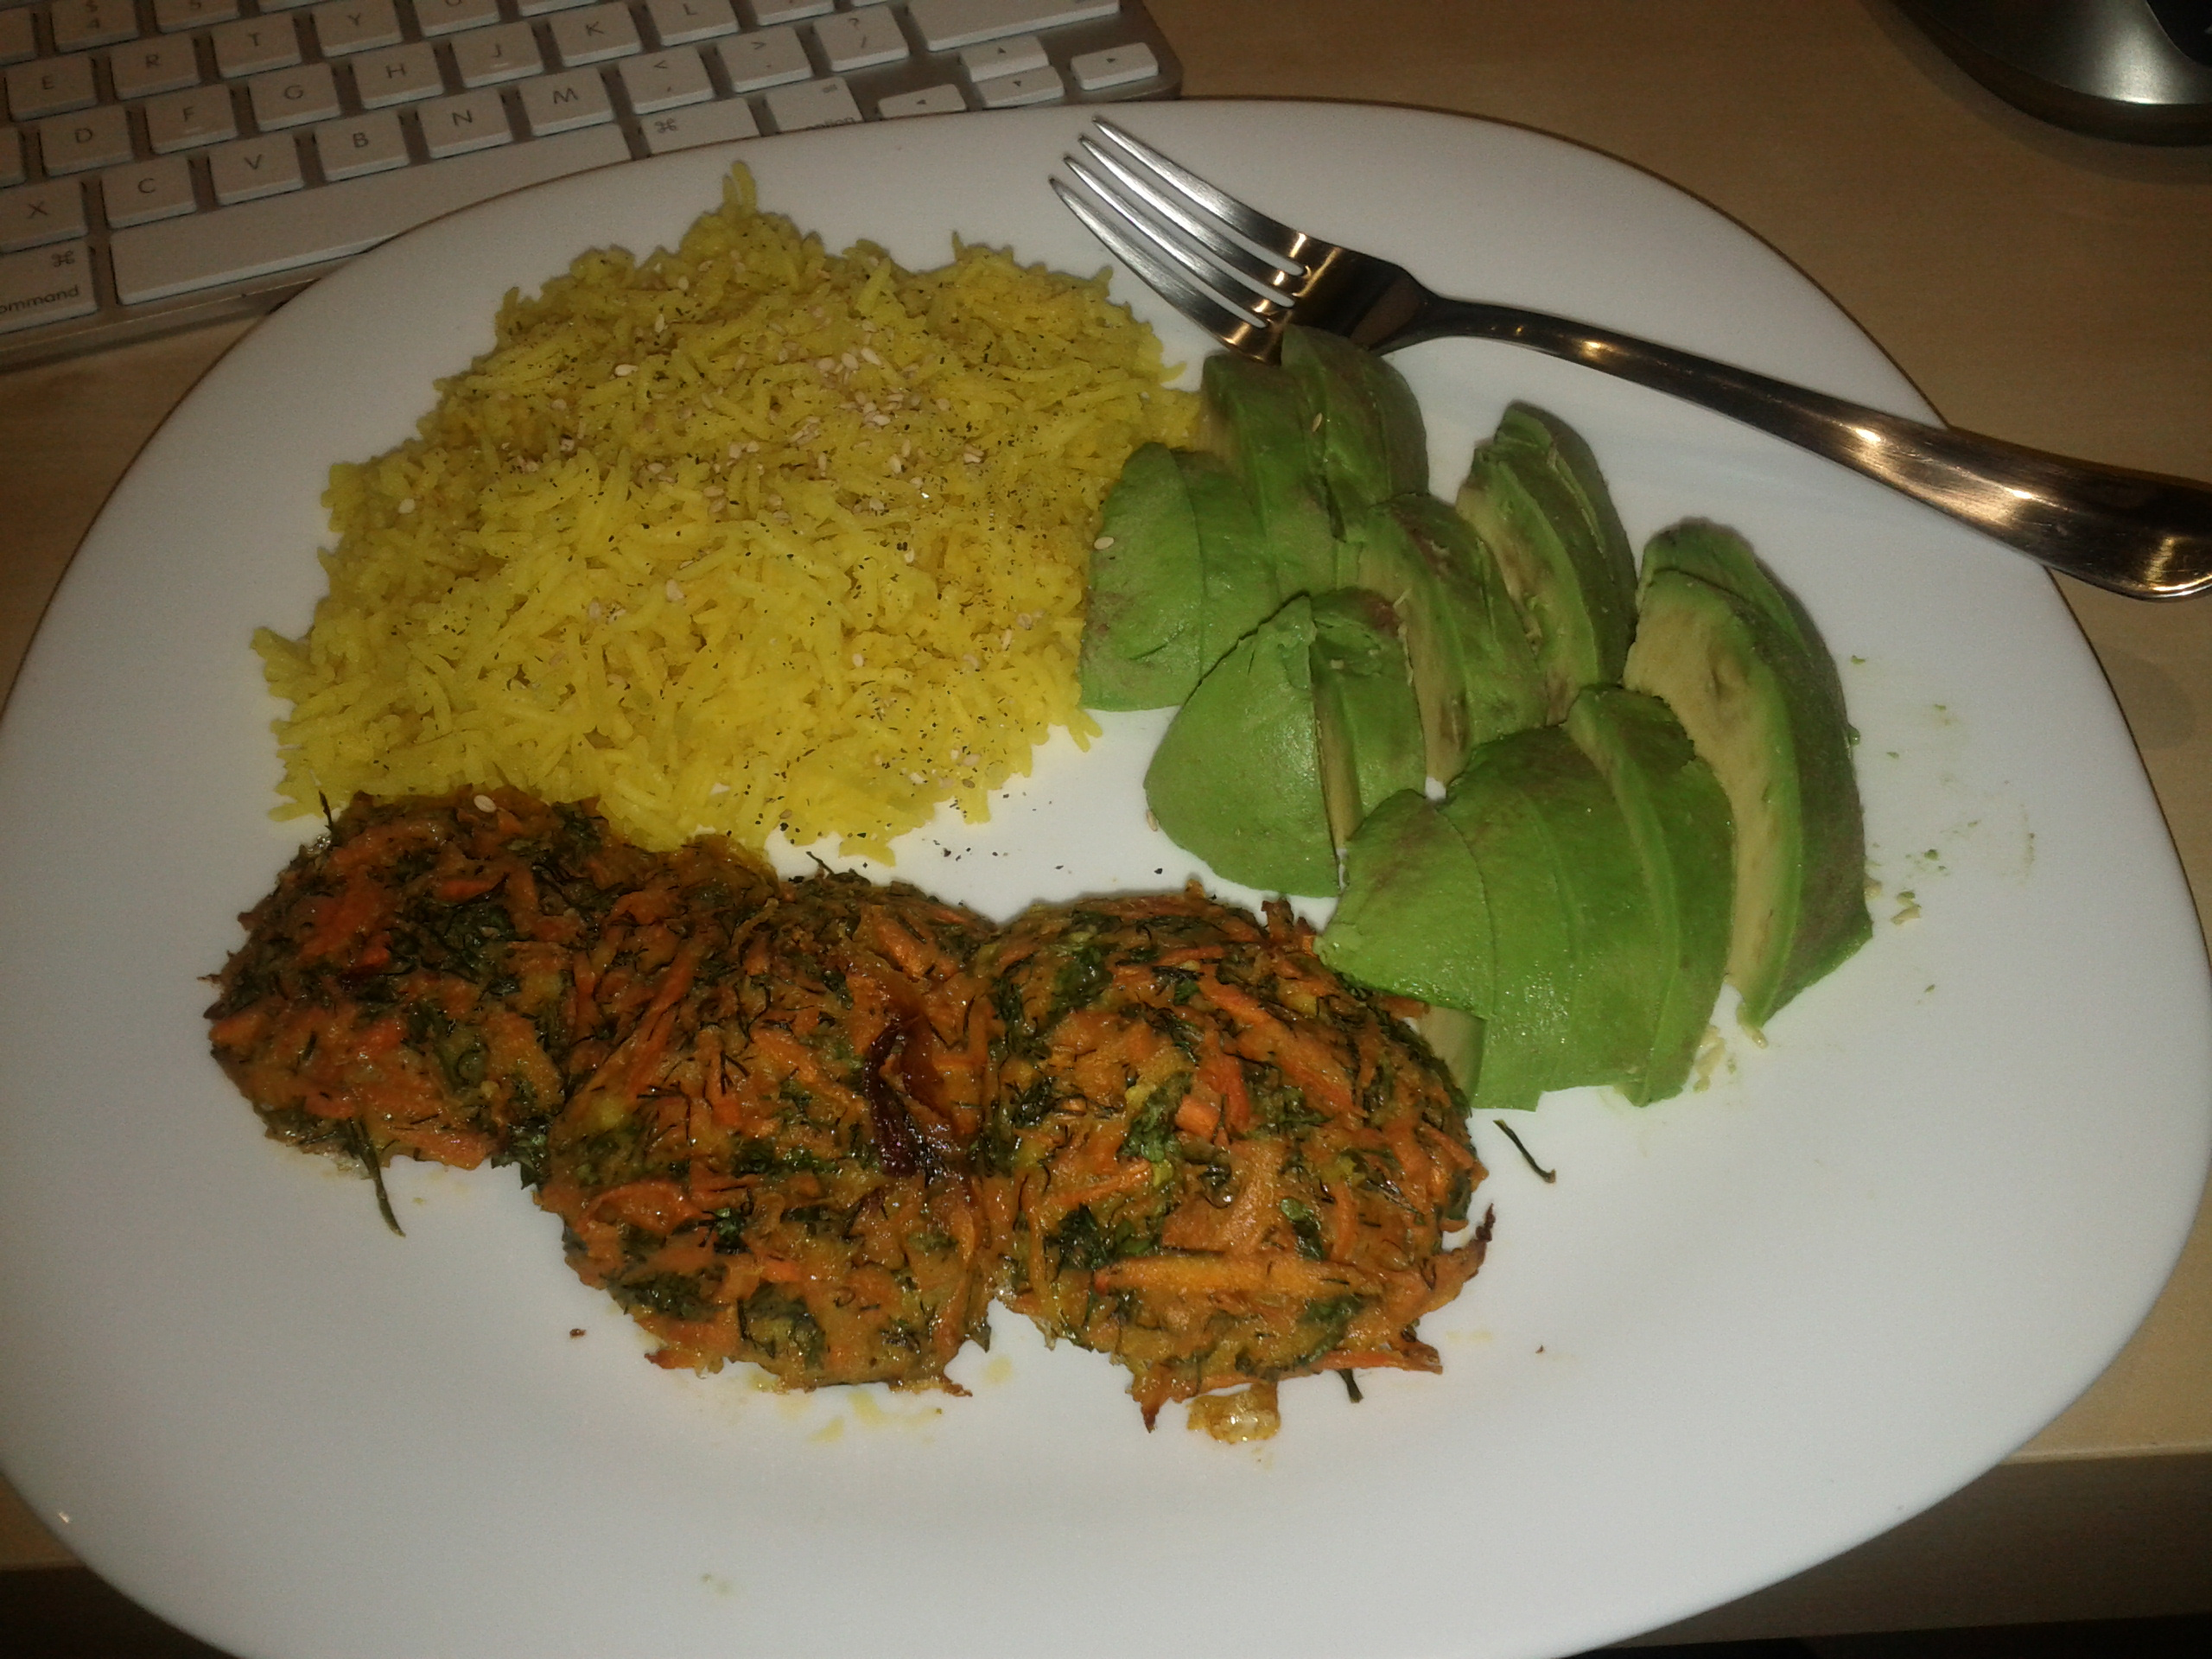 Baked carrot latkes with yellow rice and avocado